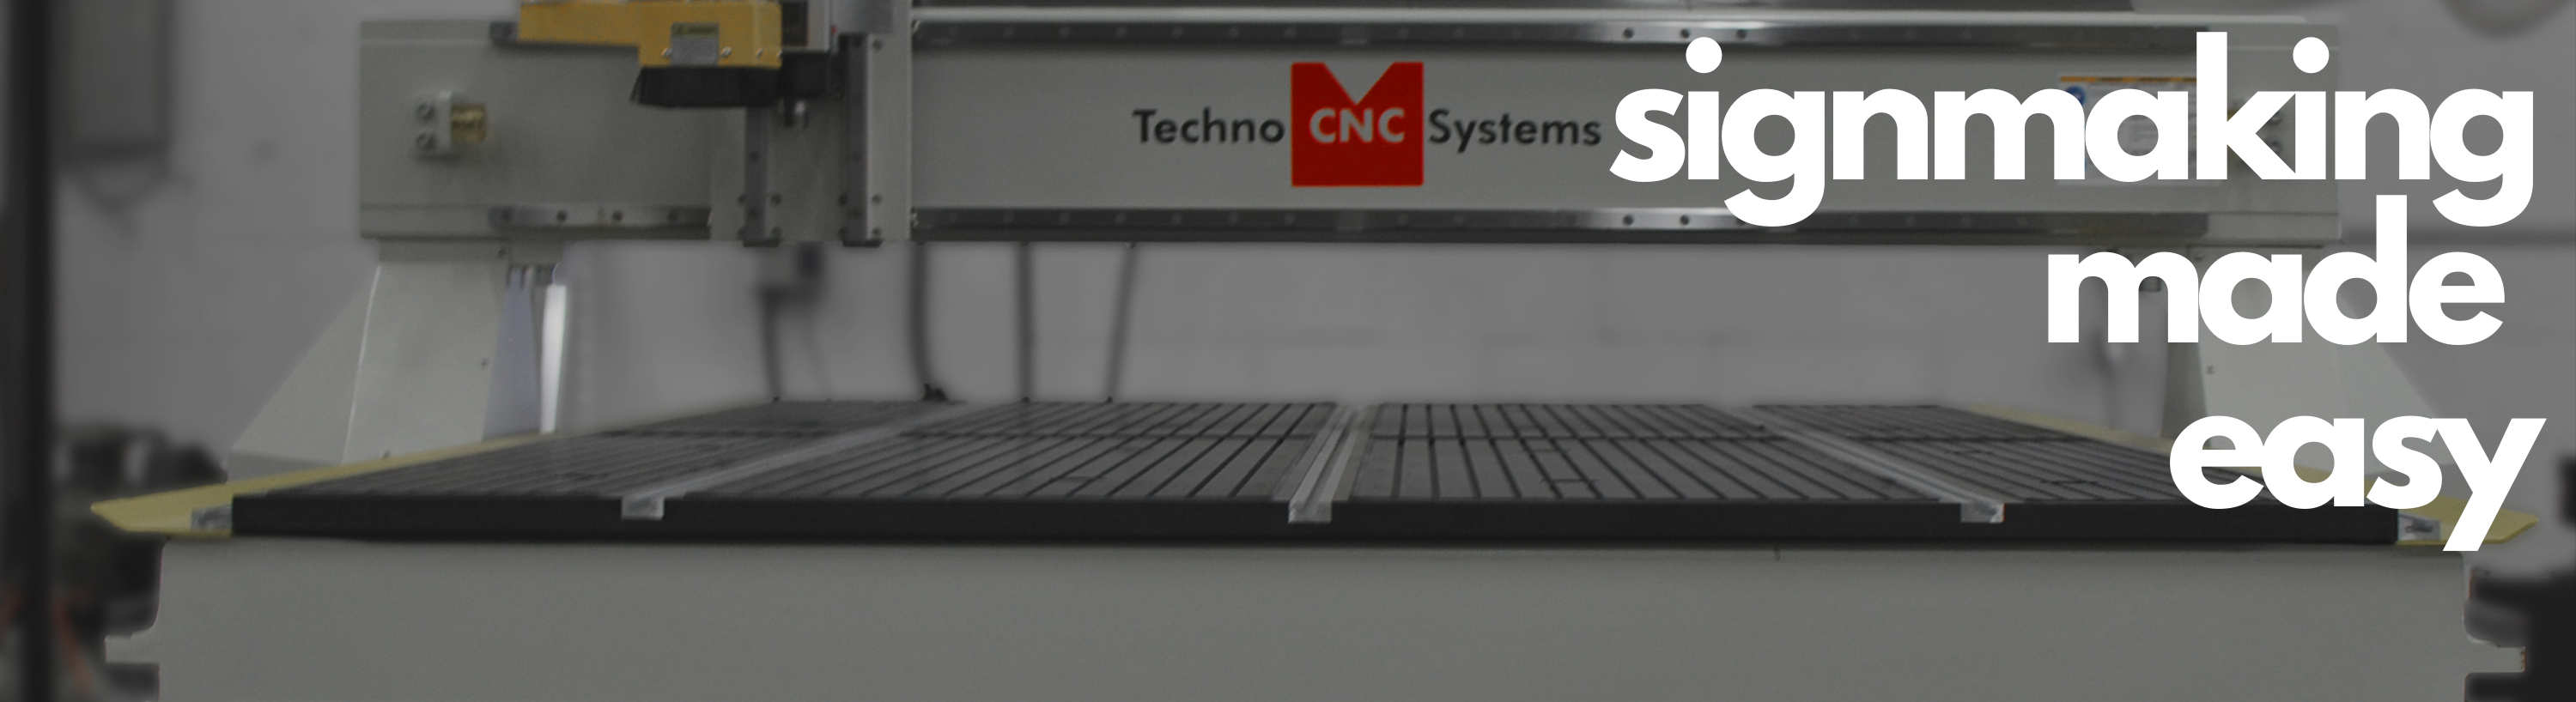 signmaking made easy - atlas series cnc router